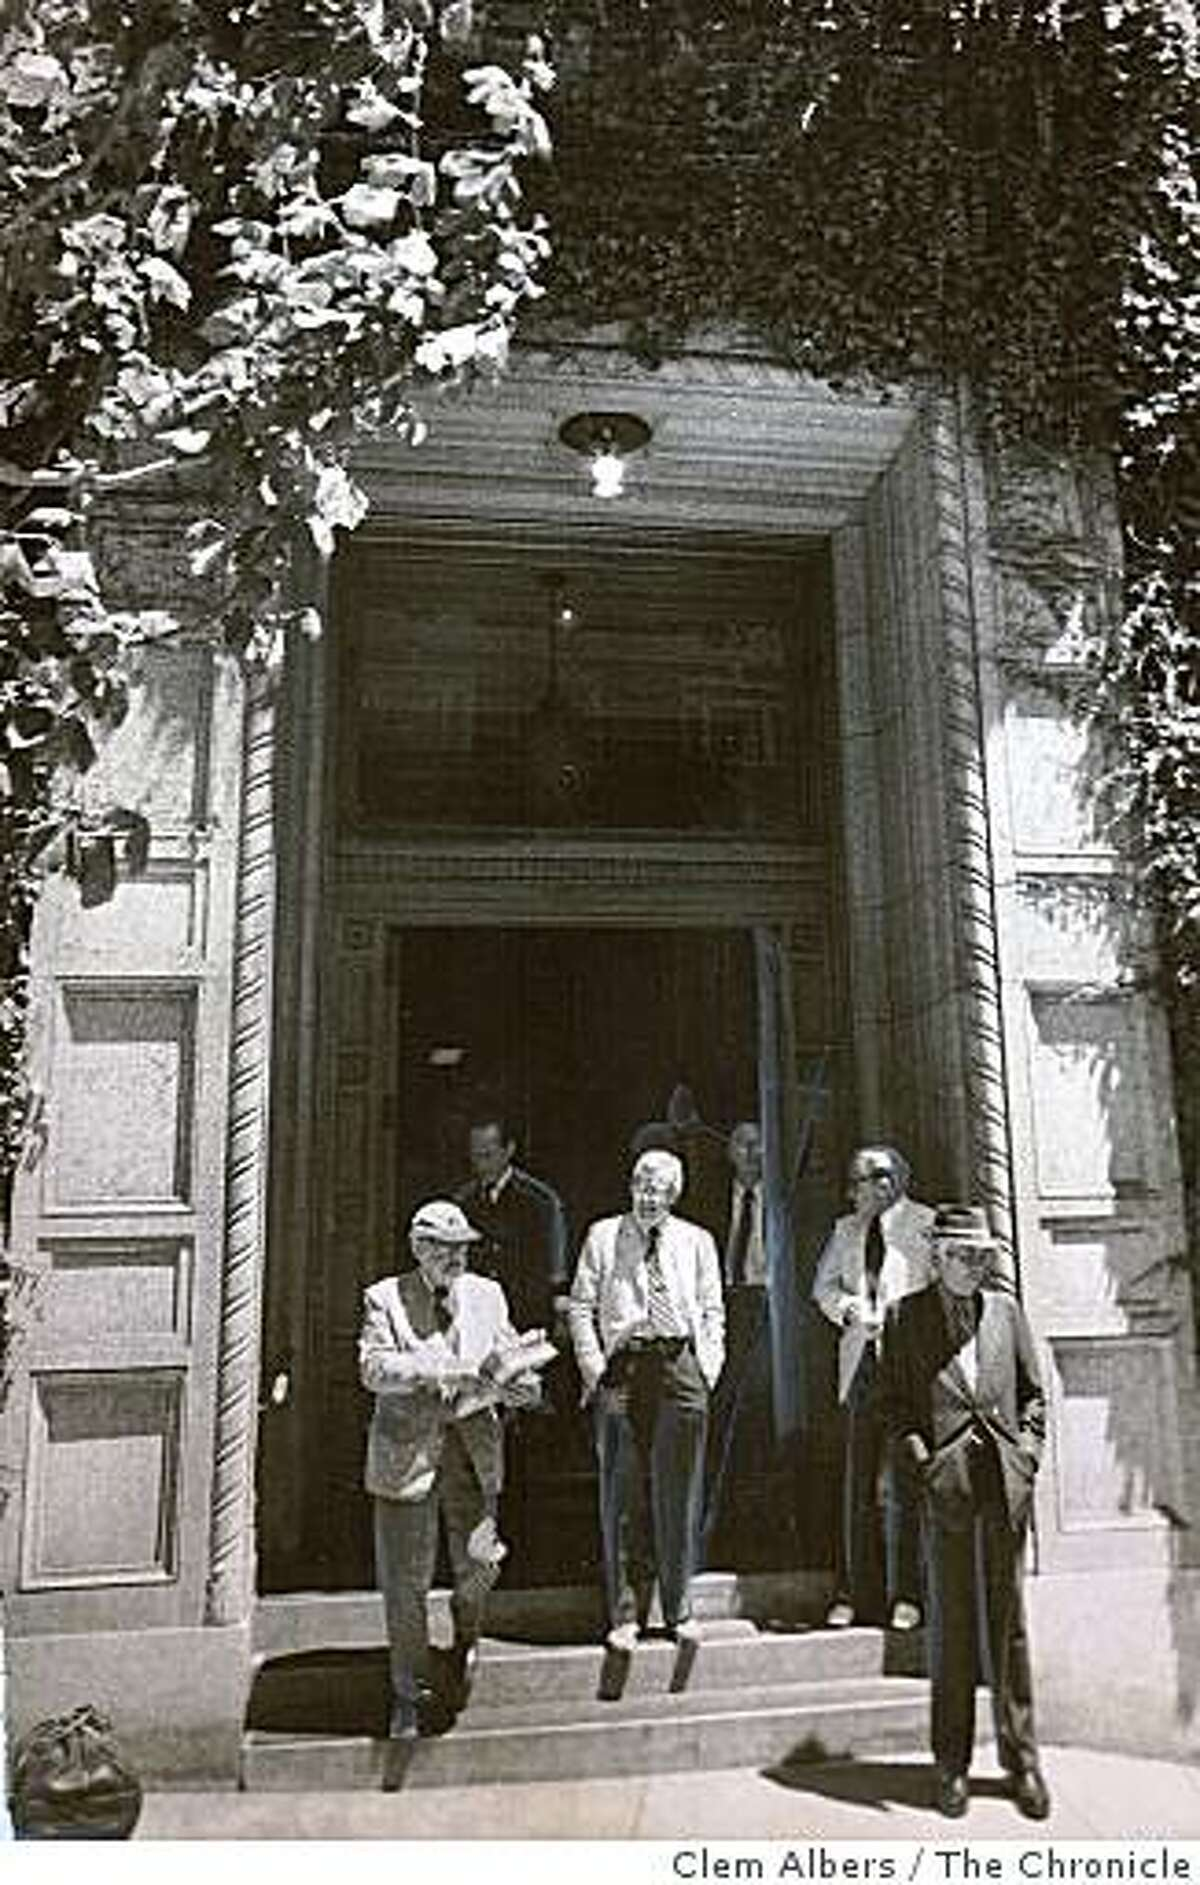 The Bohemian club on 624 Taylor Street in San Francisco on July 24, 1975